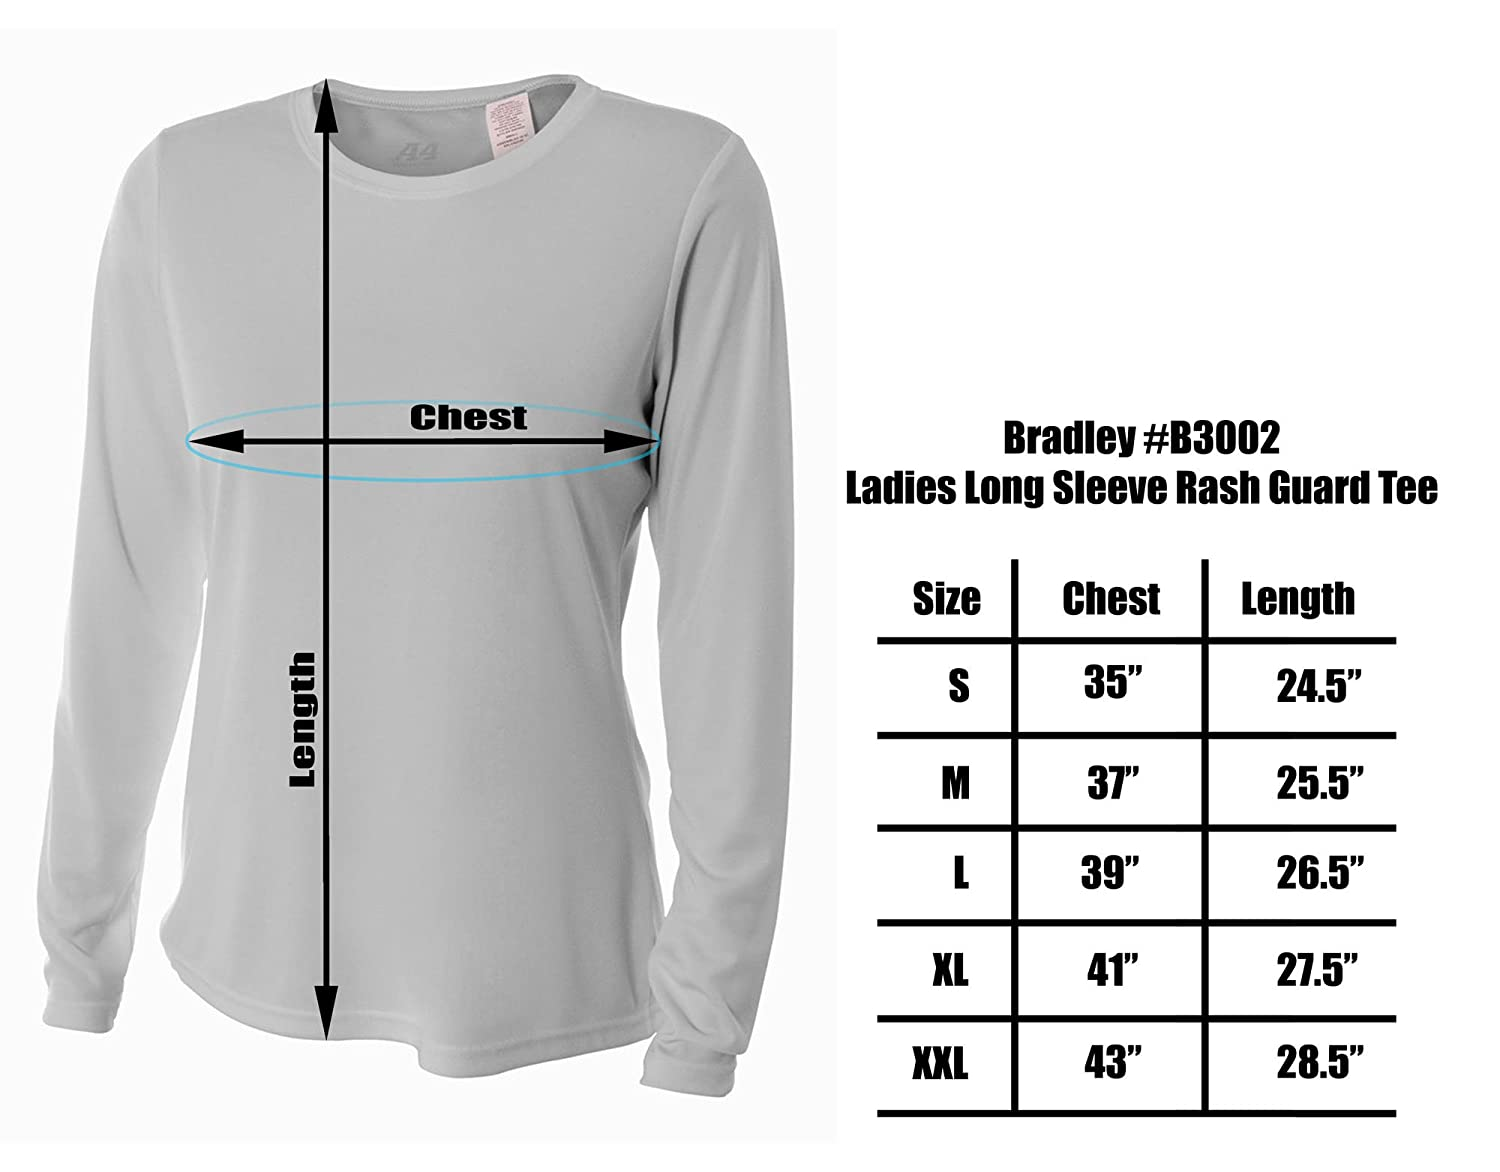 c55bc596 Bradley Women's Casual Fit Long Sleeve Rash Guard Swim Shirt with UV  Protection at Amazon Women's Clothing store: